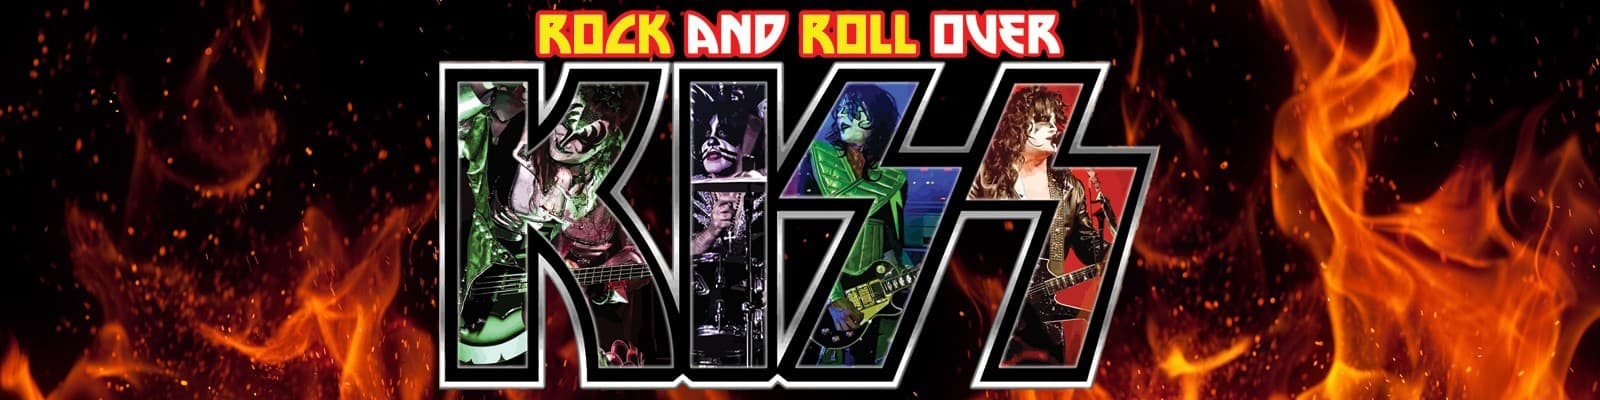 Rock 'n' Roll Over (KISS Tribute Show) - Sudbury